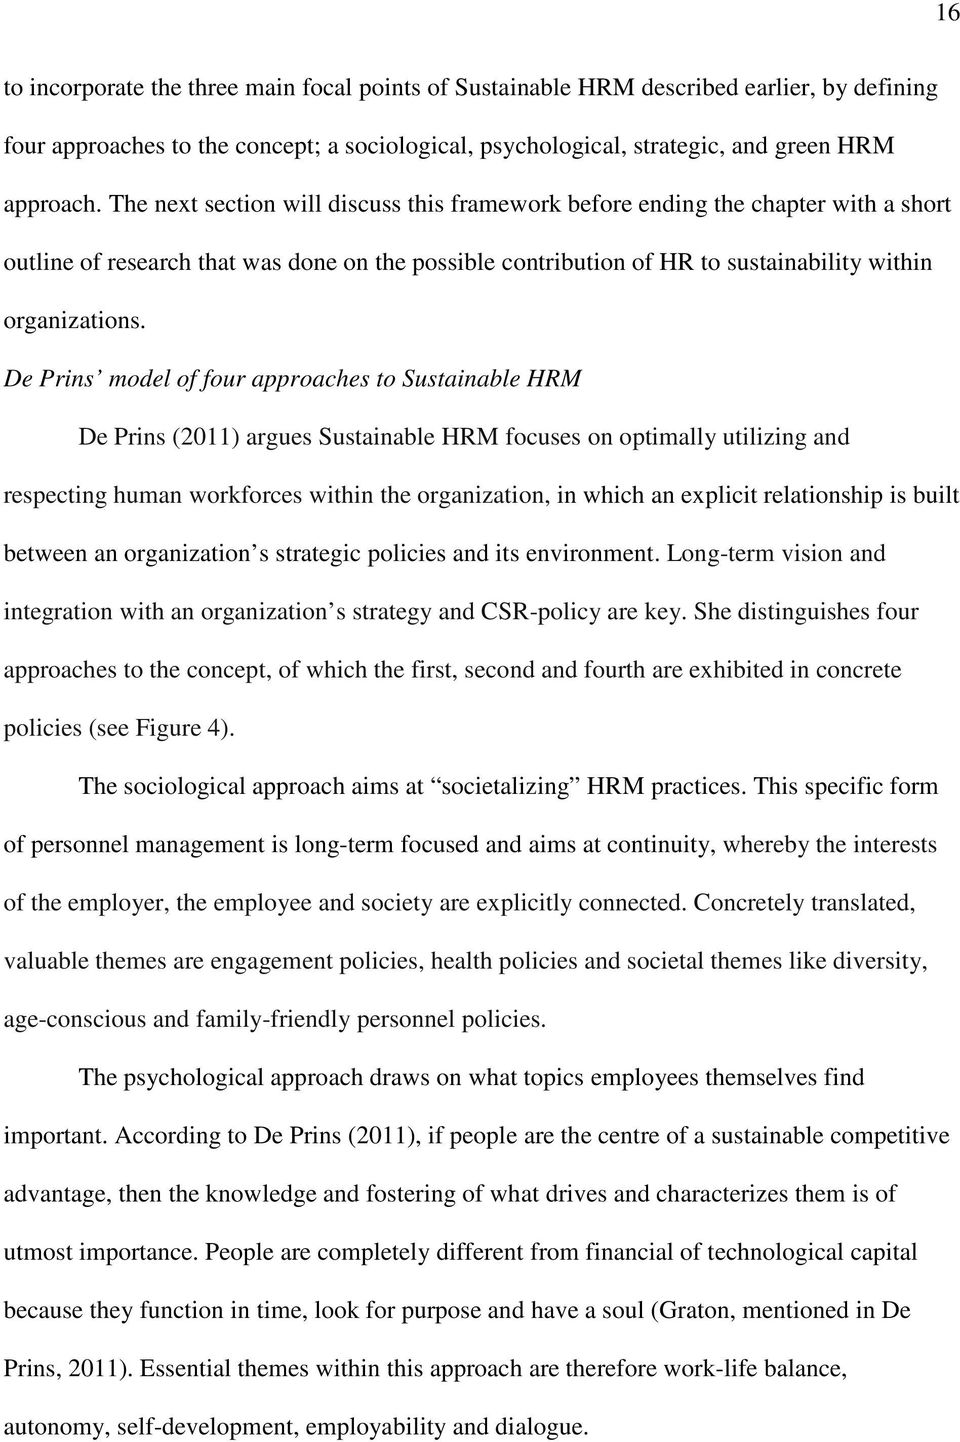 De Prins model of four approaches to Sustainable HRM De Prins (2011) argues Sustainable HRM focuses on optimally utilizing and respecting human workforces within the organization, in which an